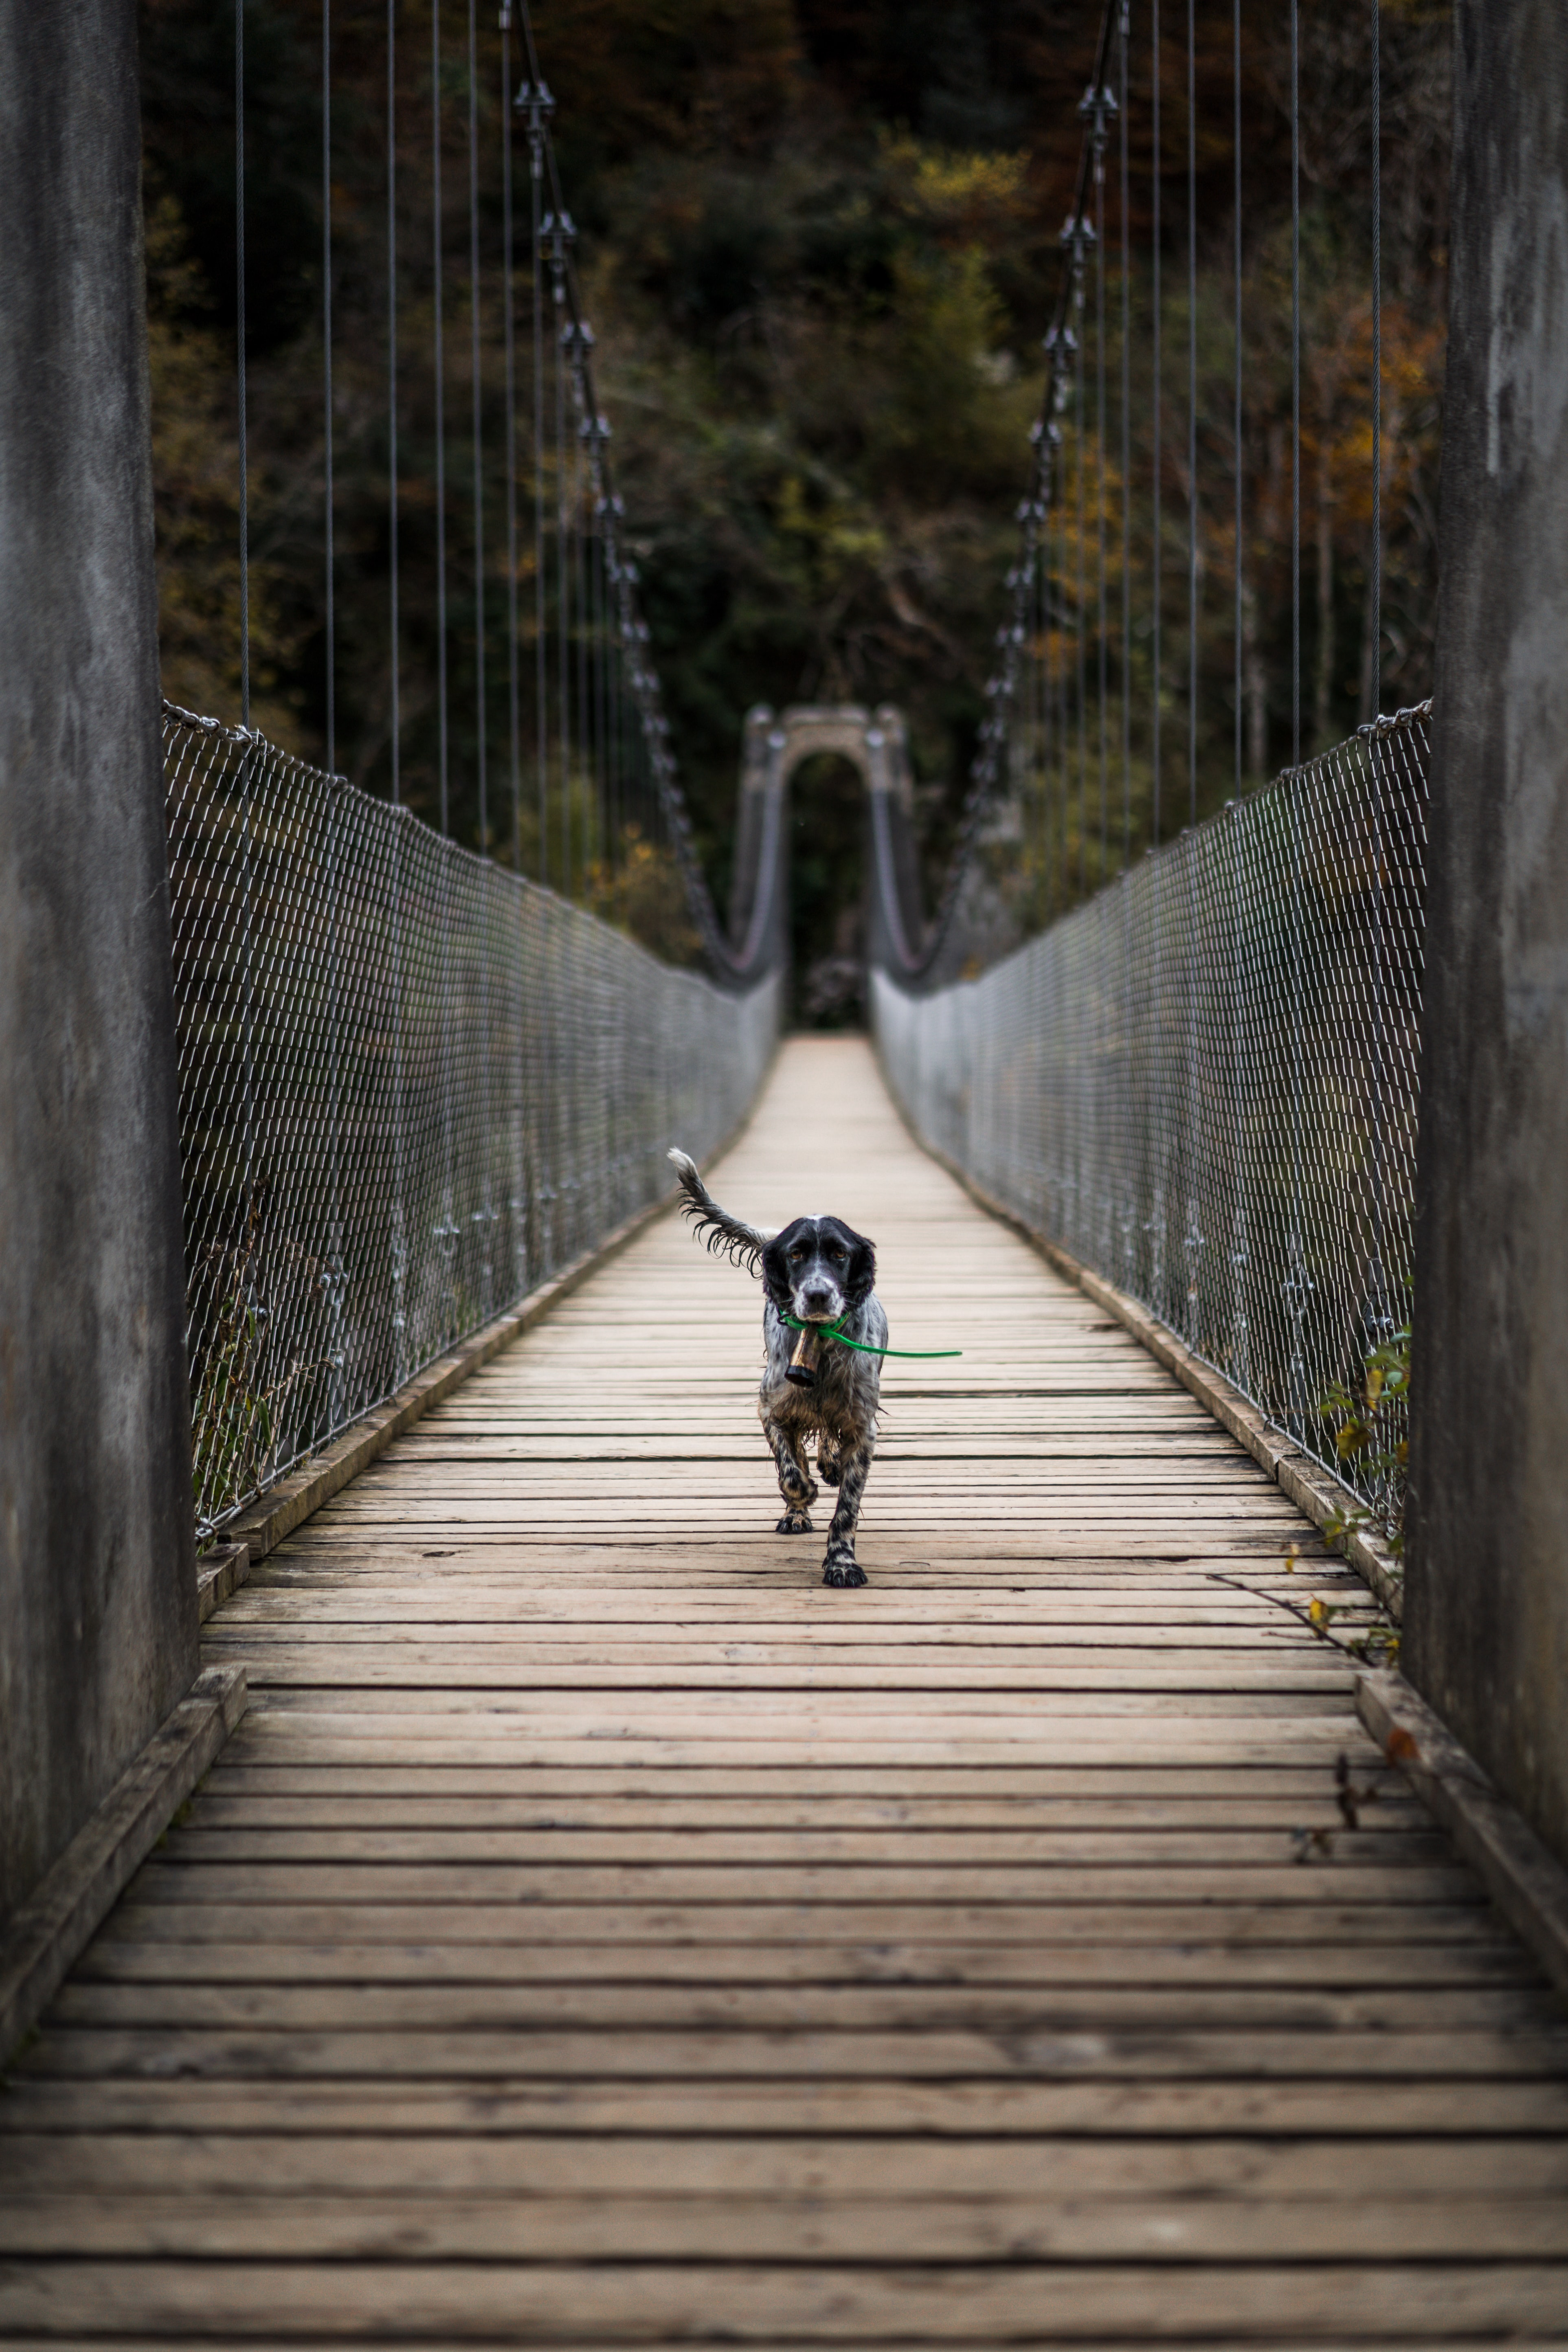 adult English setter cross wooden hanging bridge during daytime